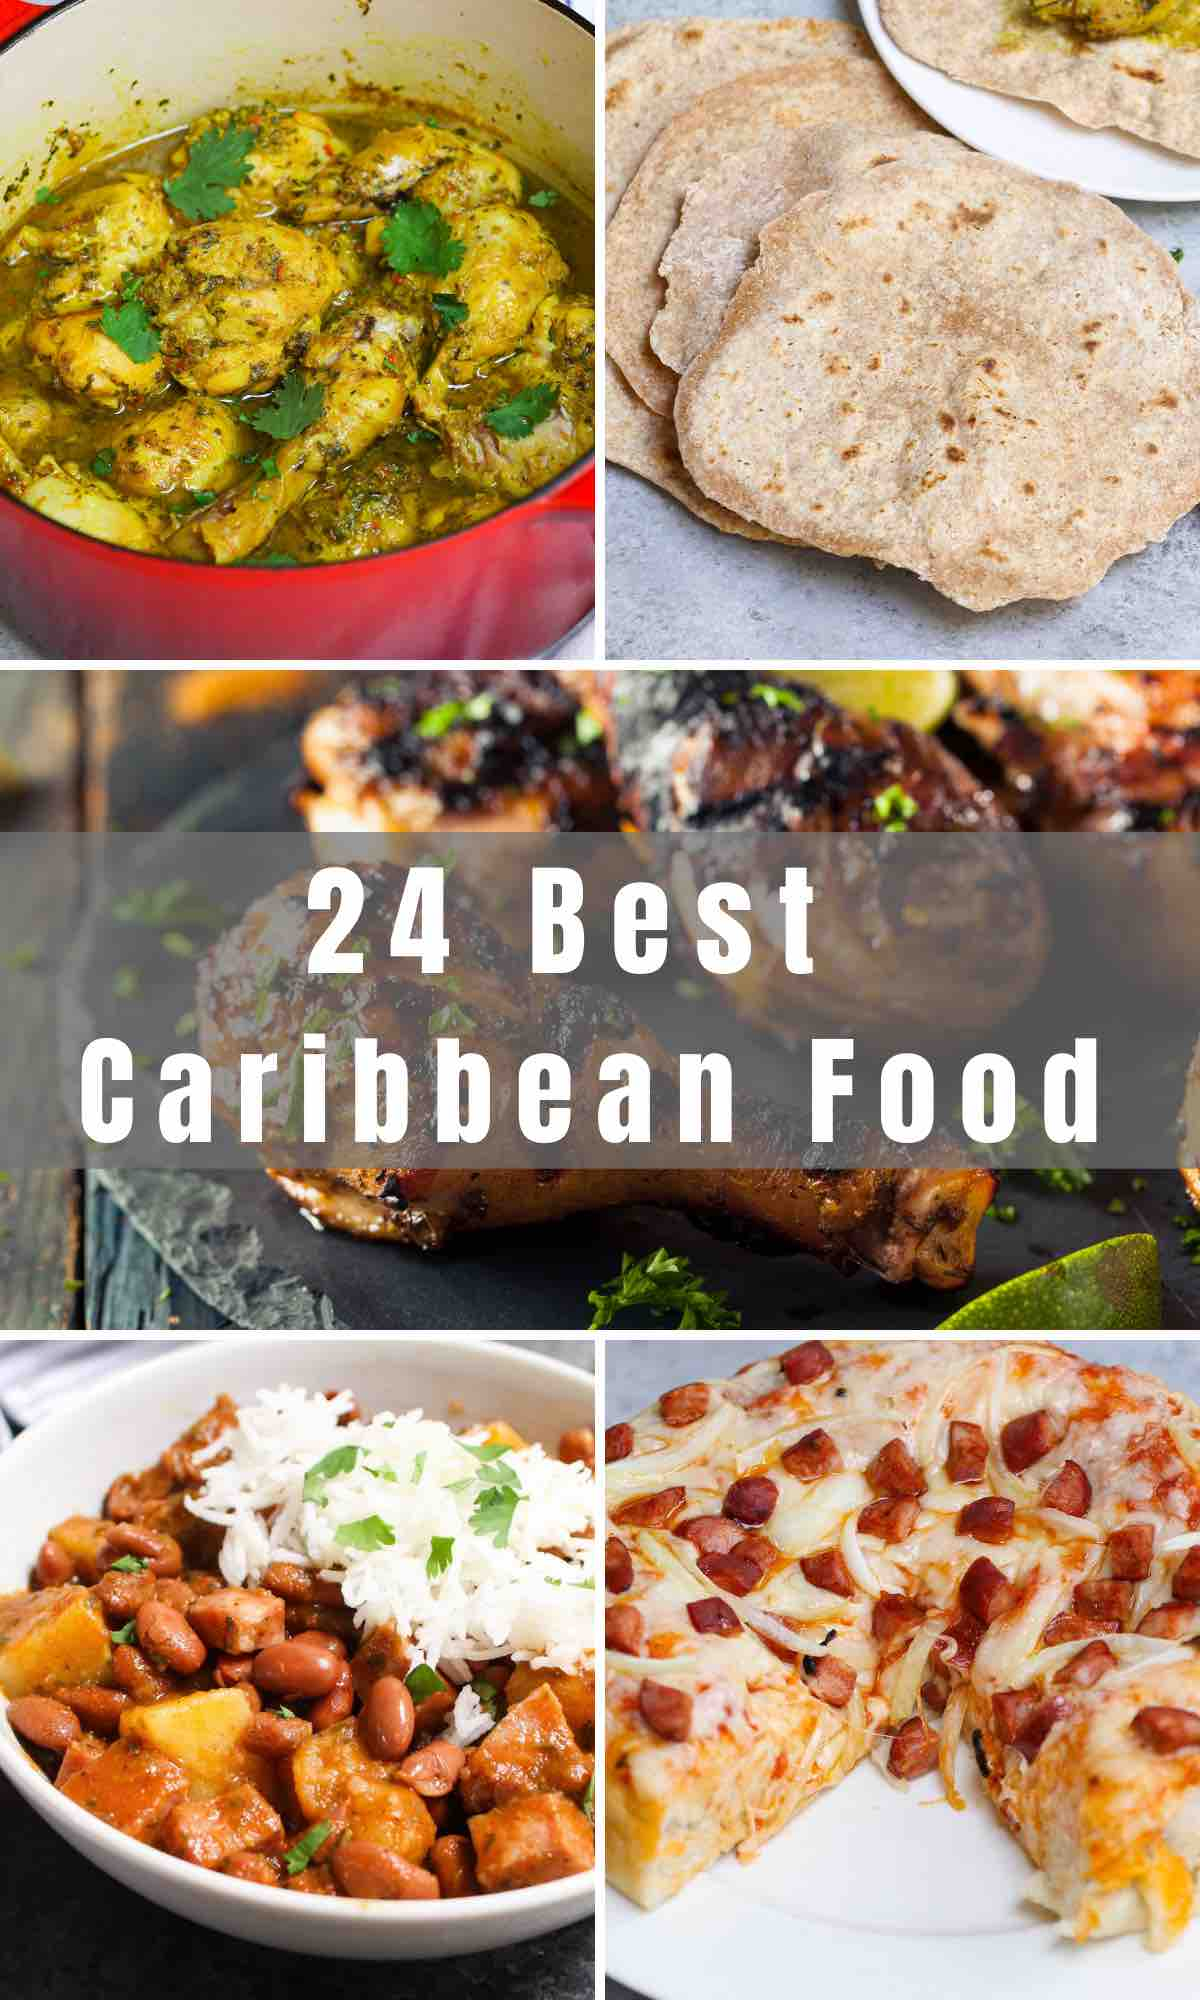 Each country in the Caribbean has its own unique culture and there are so many delicious meals to try! When traveling isn't an option, why not recreate some authentic Caribbean Food dishes at home?  Whether you'd like to visit Jamaica, Trinidad, or Cuba, these recipes will transport you to the islands with all the flavor and spice you could ever need!